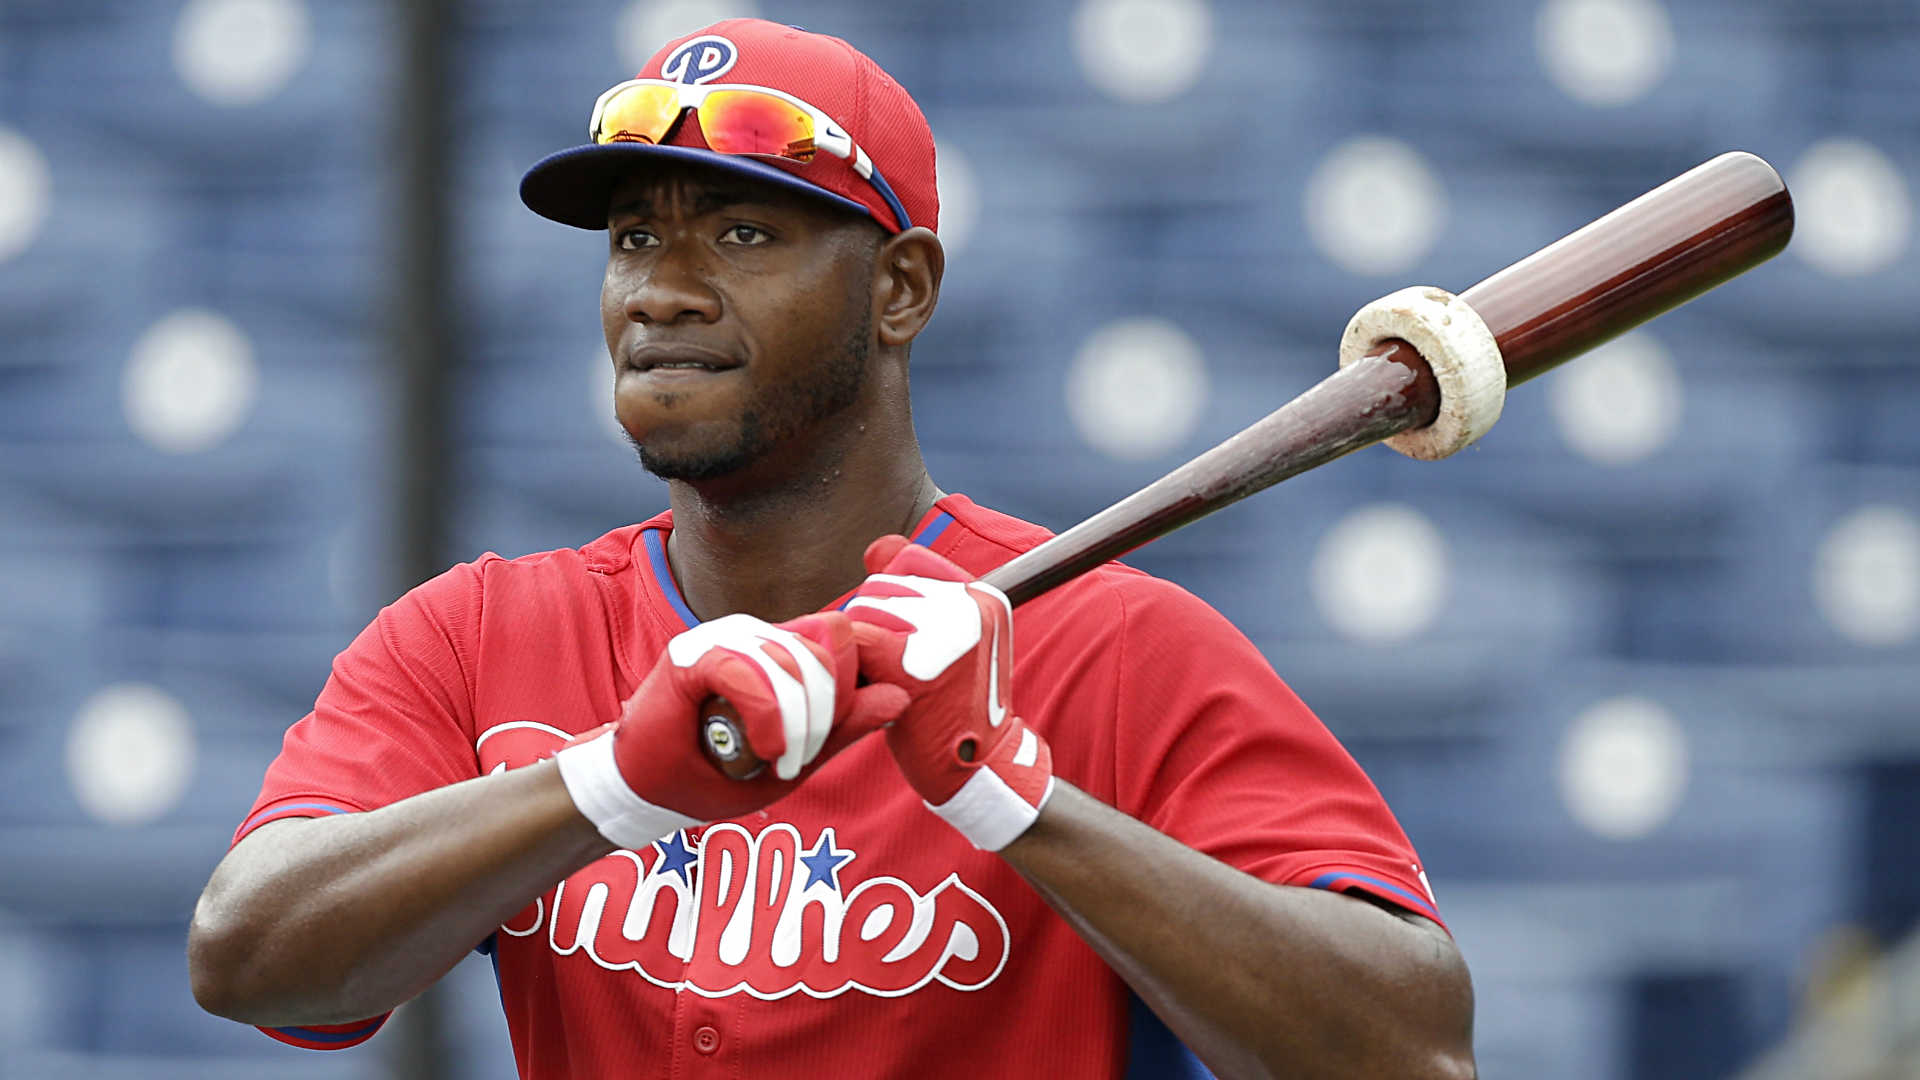 Philadelphia Phillies 2014 fantasy baseball team preview